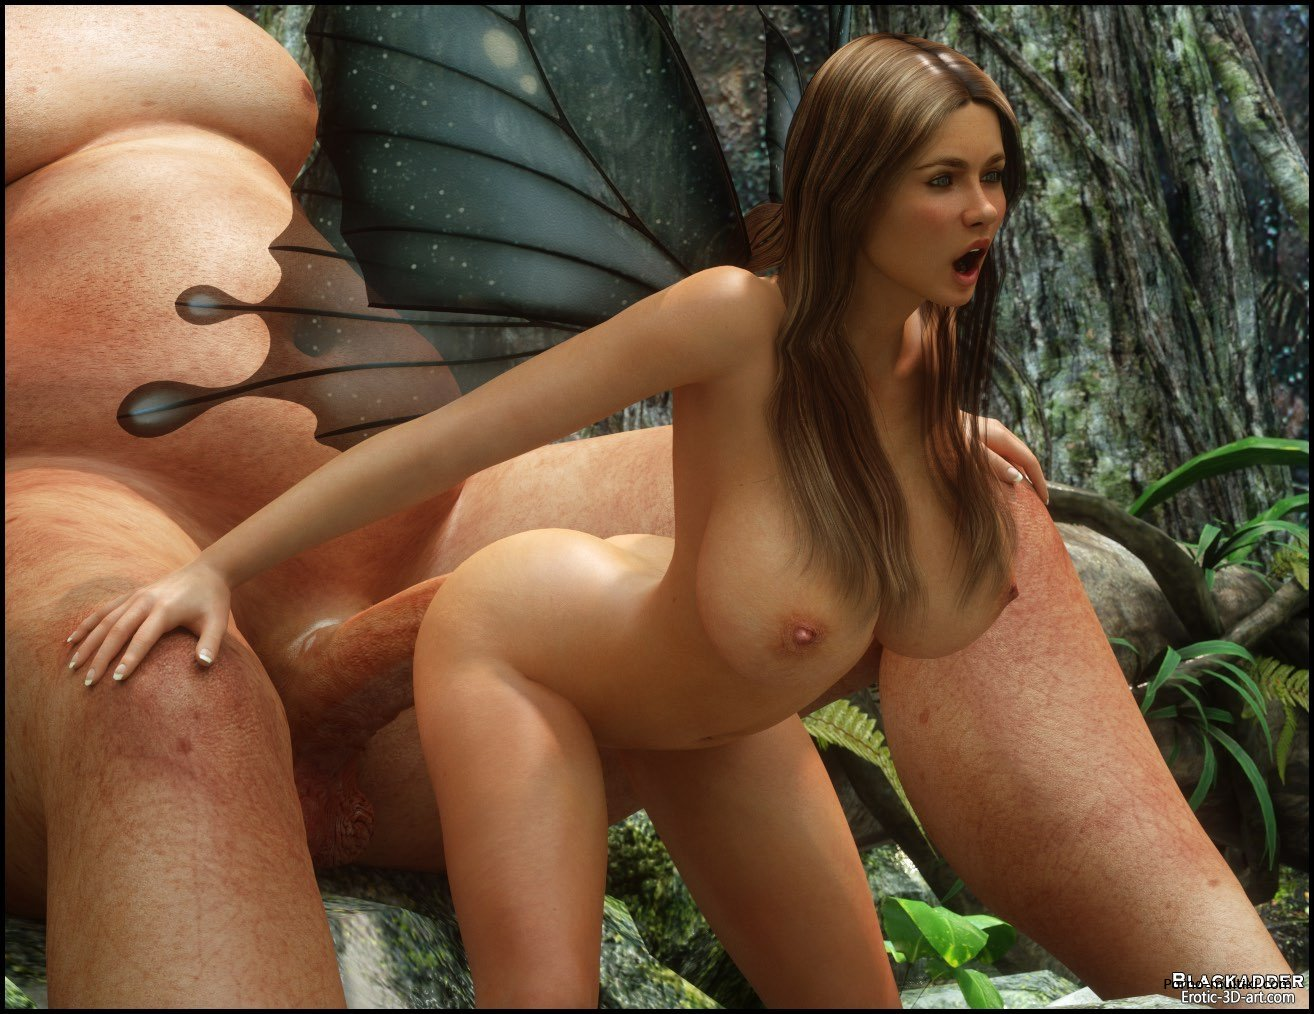 Sex with fairy 3d art naked photo